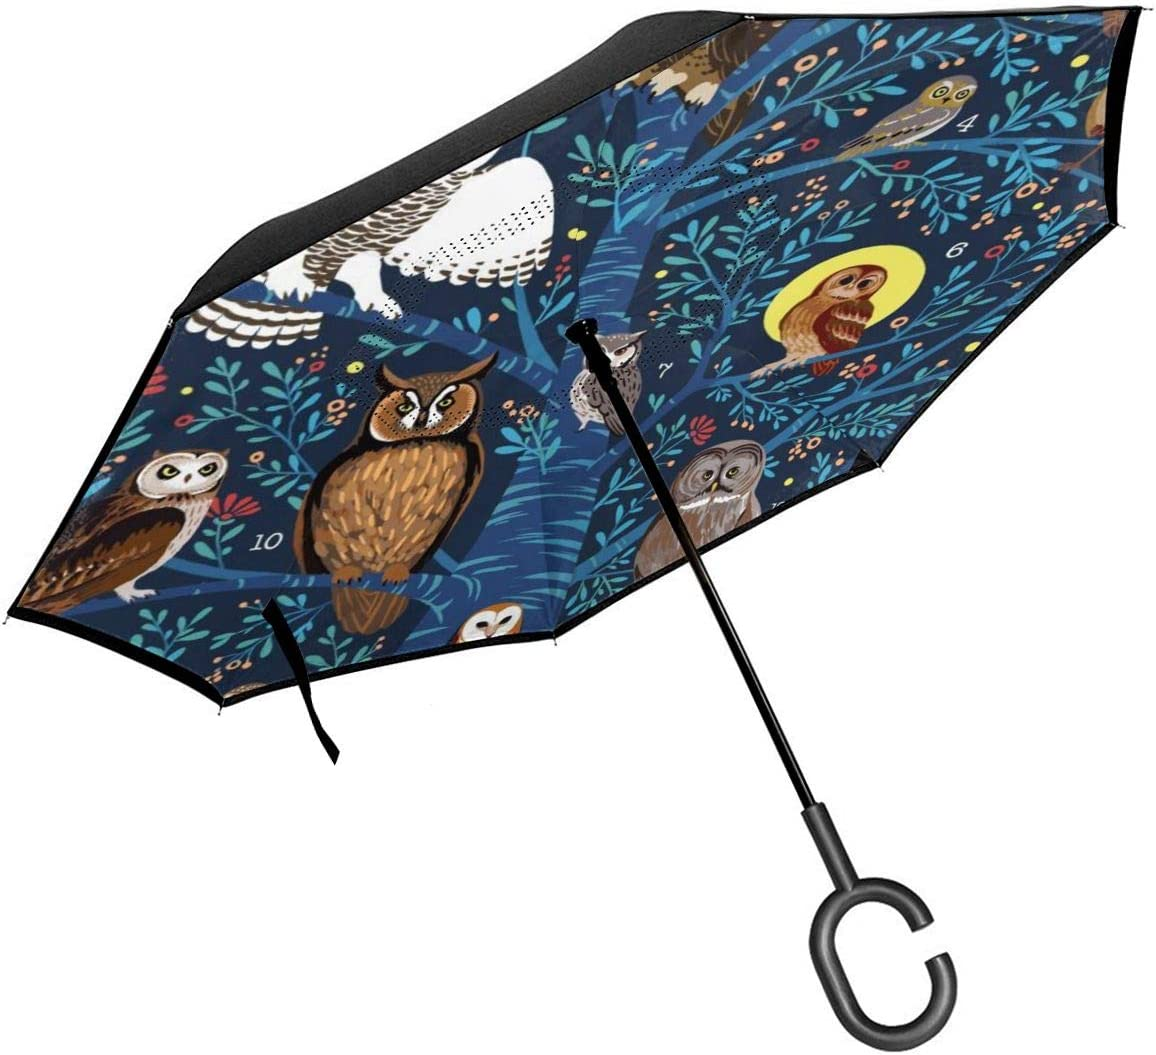 Self Stand Upside Down with C-Shaped Handle Folding Reverse Umbrella for Car Rain Outdoor PYFXSALA Digital Owl Windproof Inverted Umbrella Double Layer UV Protection